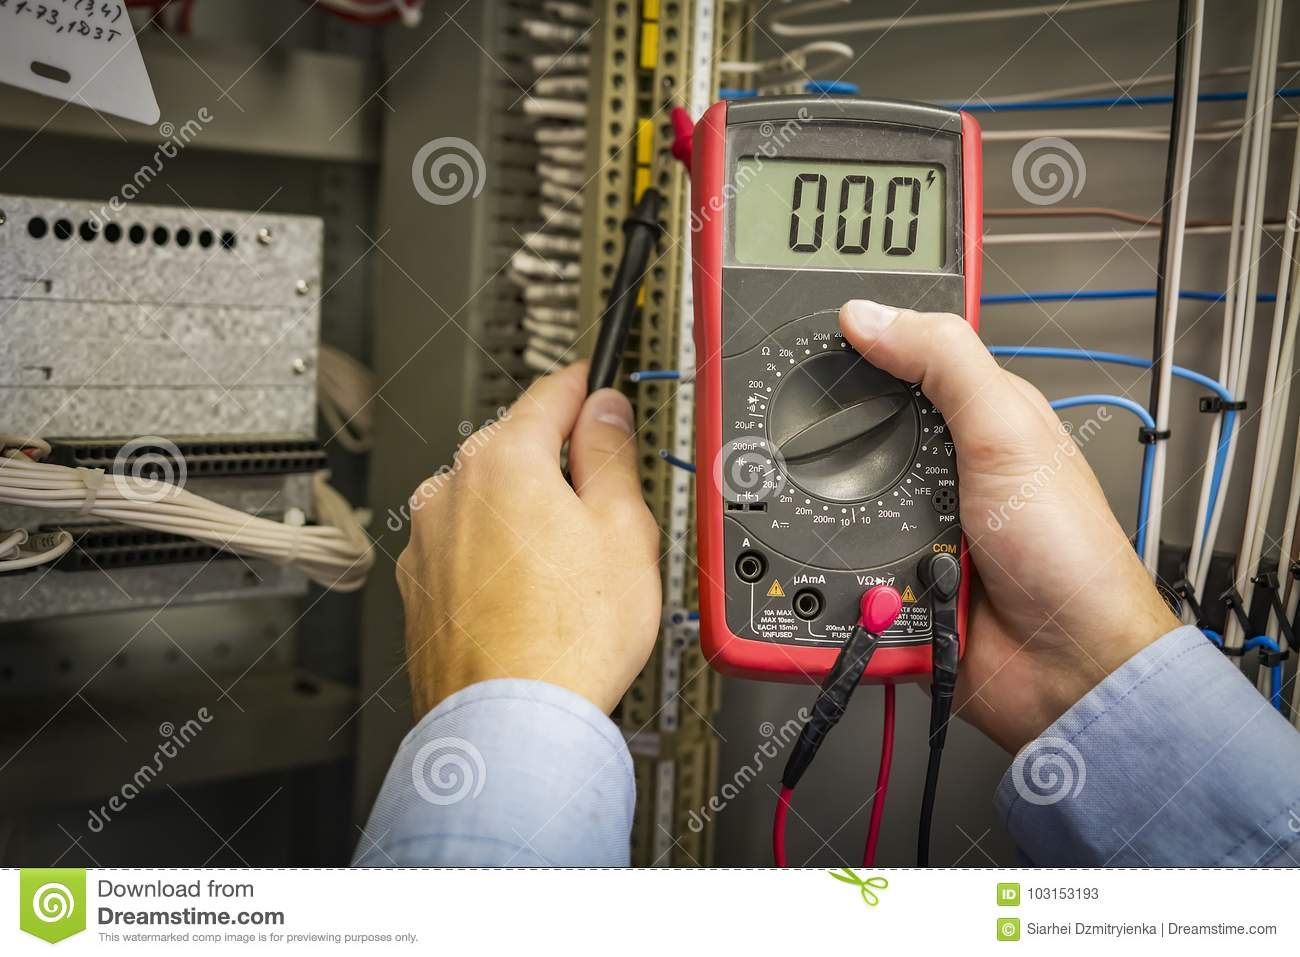 Multimeter In Hands Of Electrician Engineer Closeup On Electric Electrical Wiring Test Panel Background Circuit Service